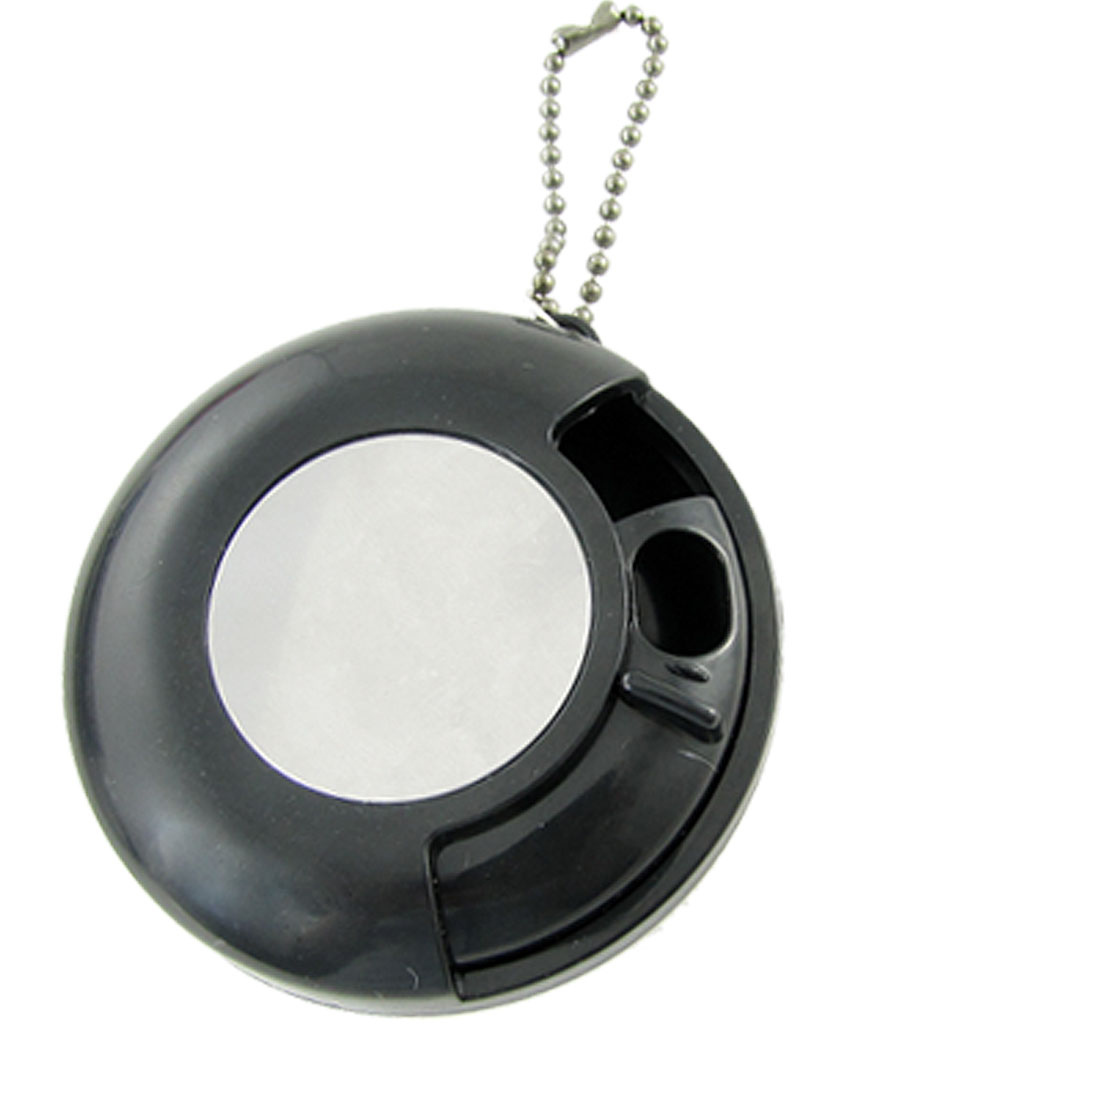 Portable Black Plastic Round Smoking Ashtray w Chain